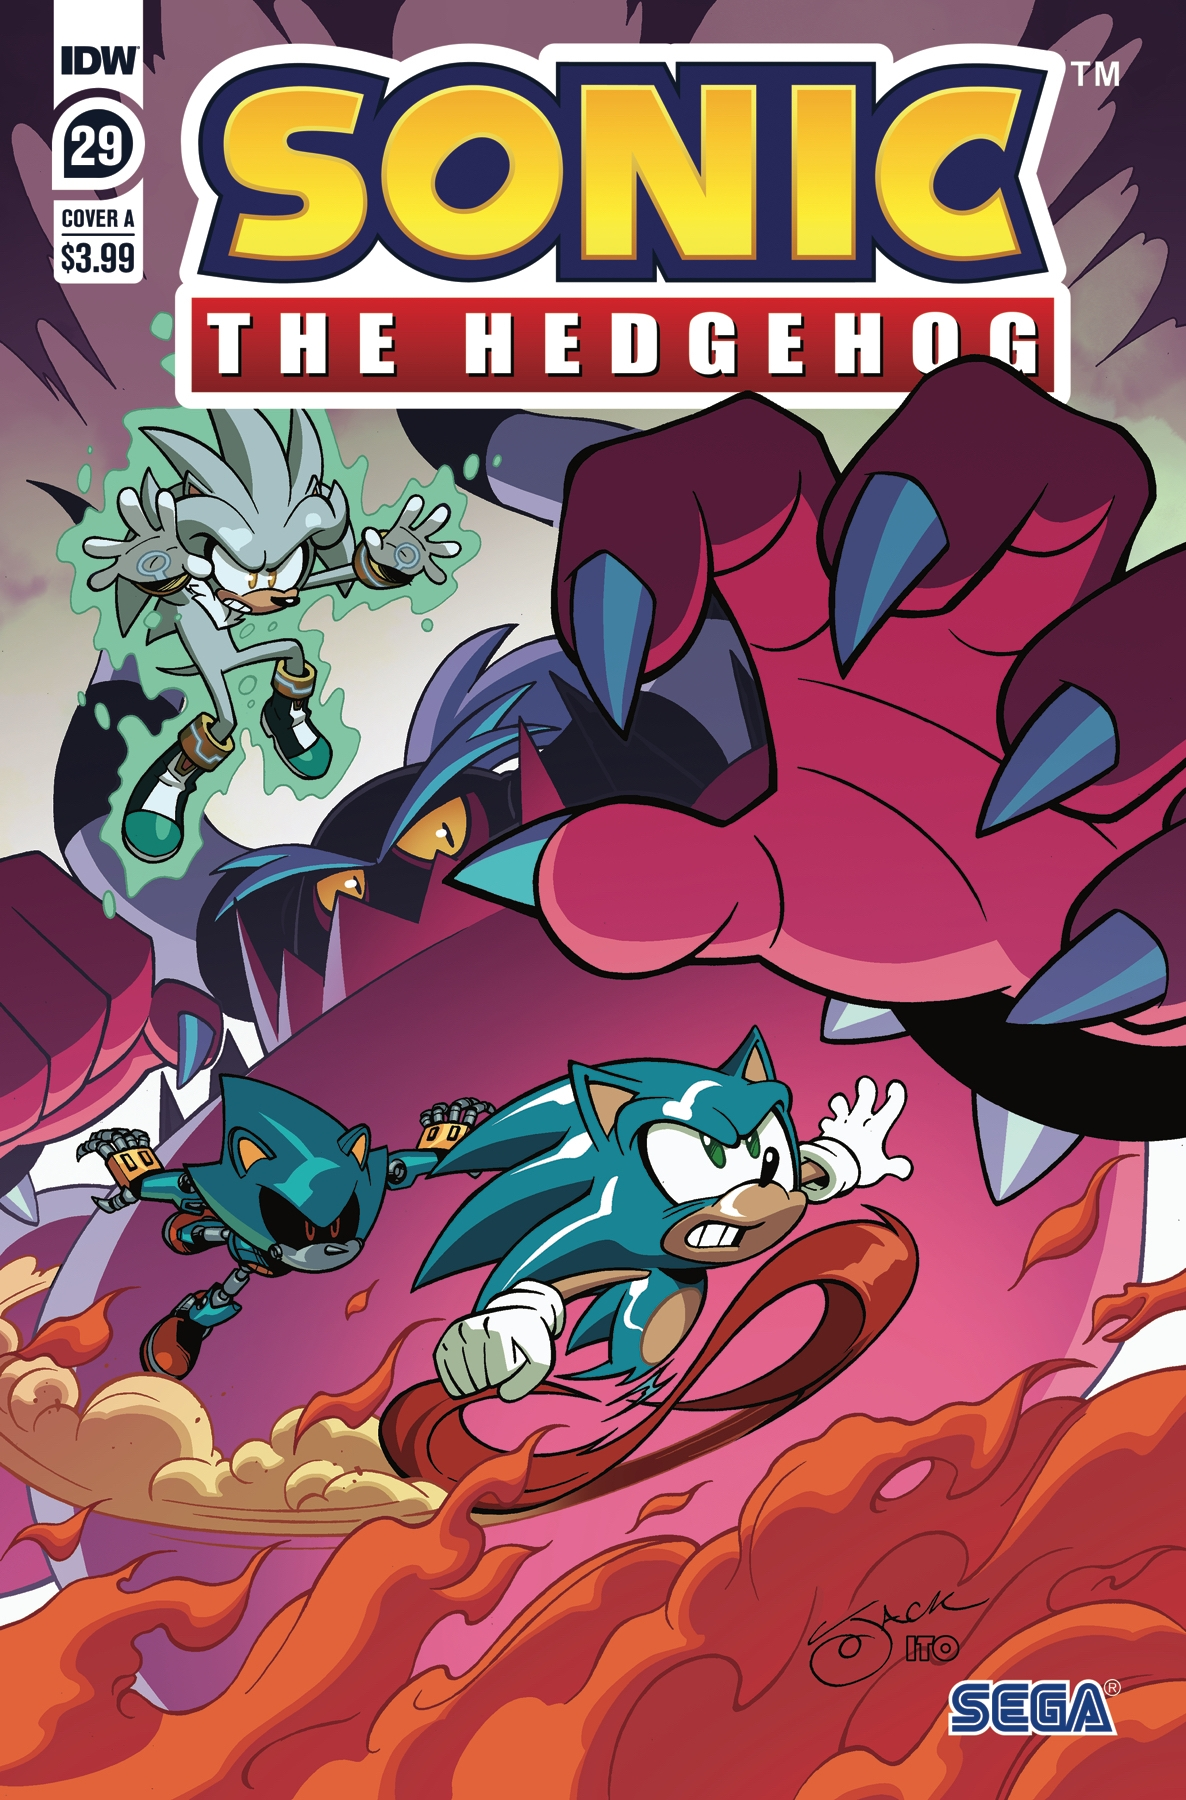 Sonic The Hedgehog #29 Cover A